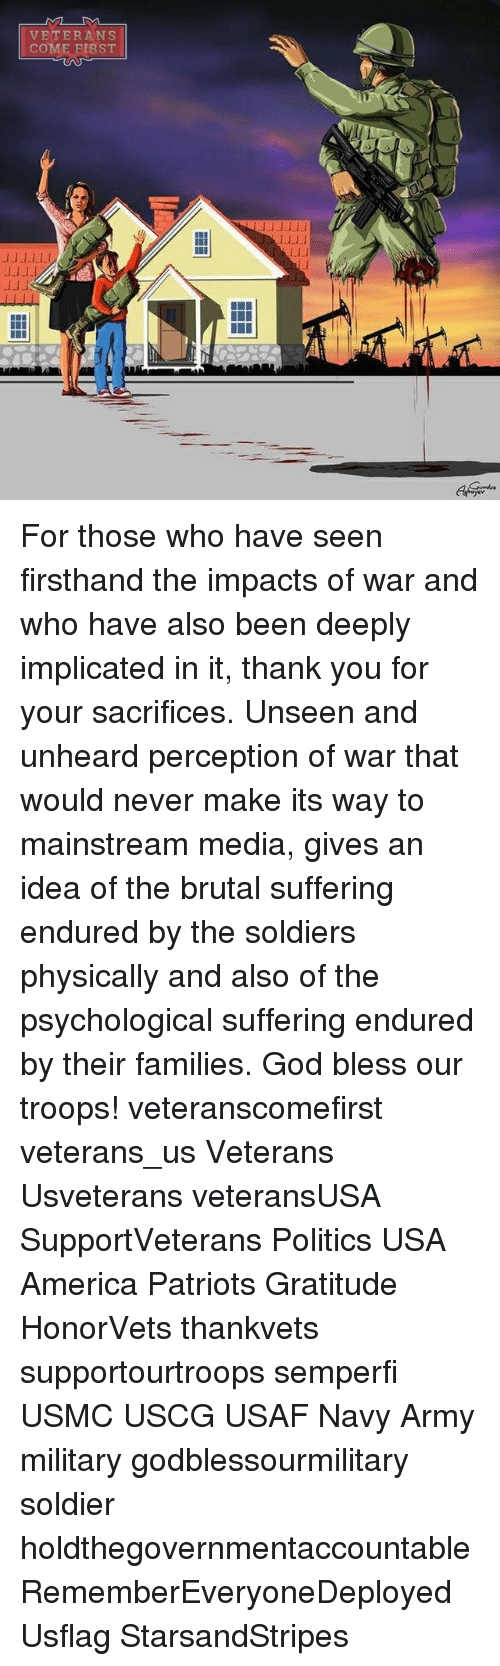 physicality: ML-DA  VETERANS  COME FIRST  l-1.1lJJ  LLLI  l_1.1  JJ-LLL!  -1.1 For those who have seen firsthand the impacts of war and who have also been deeply implicated in it, thank you for your sacrifices. Unseen and unheard perception of war that would never make its way to mainstream media, gives an idea of the brutal suffering endured by the soldiers physically and also of the psychological suffering endured by their families. God bless our troops! veteranscomefirst veterans_us Veterans Usveterans veteransUSA SupportVeterans Politics USA America Patriots Gratitude HonorVets thankvets supportourtroops semperfi USMC USCG USAF Navy Army military godblessourmilitary soldier holdthegovernmentaccountable RememberEveryoneDeployed Usflag StarsandStripes